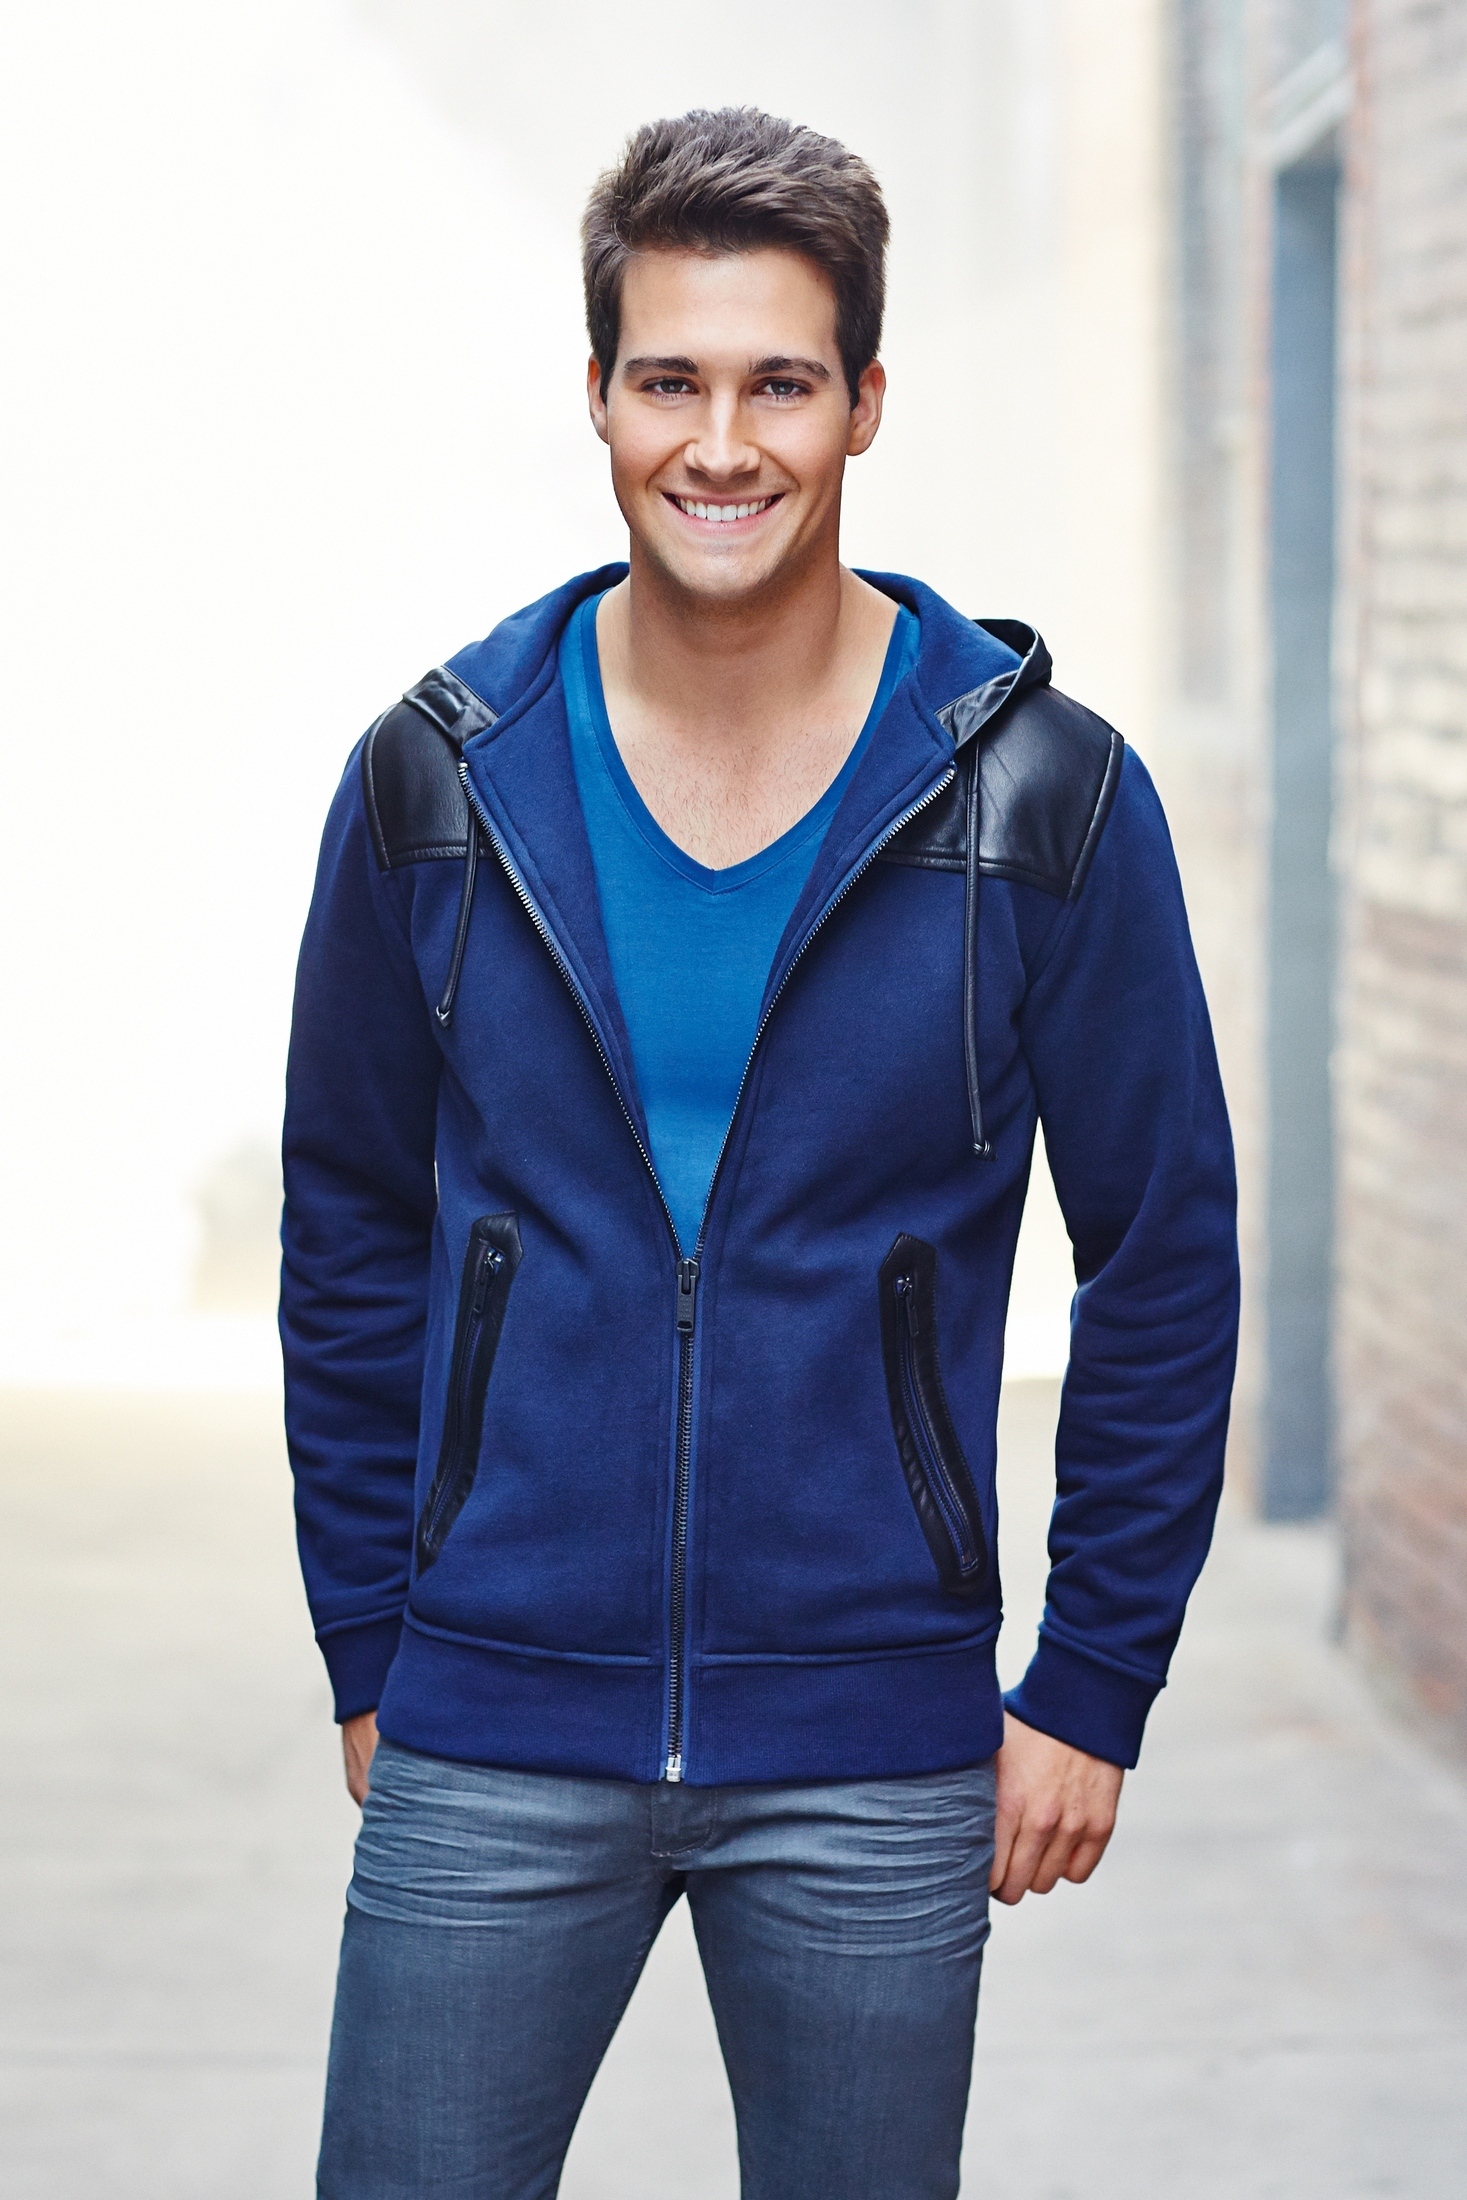 19090 download wallpaper People, Actors, Men, James Maslow screensavers and pictures for free